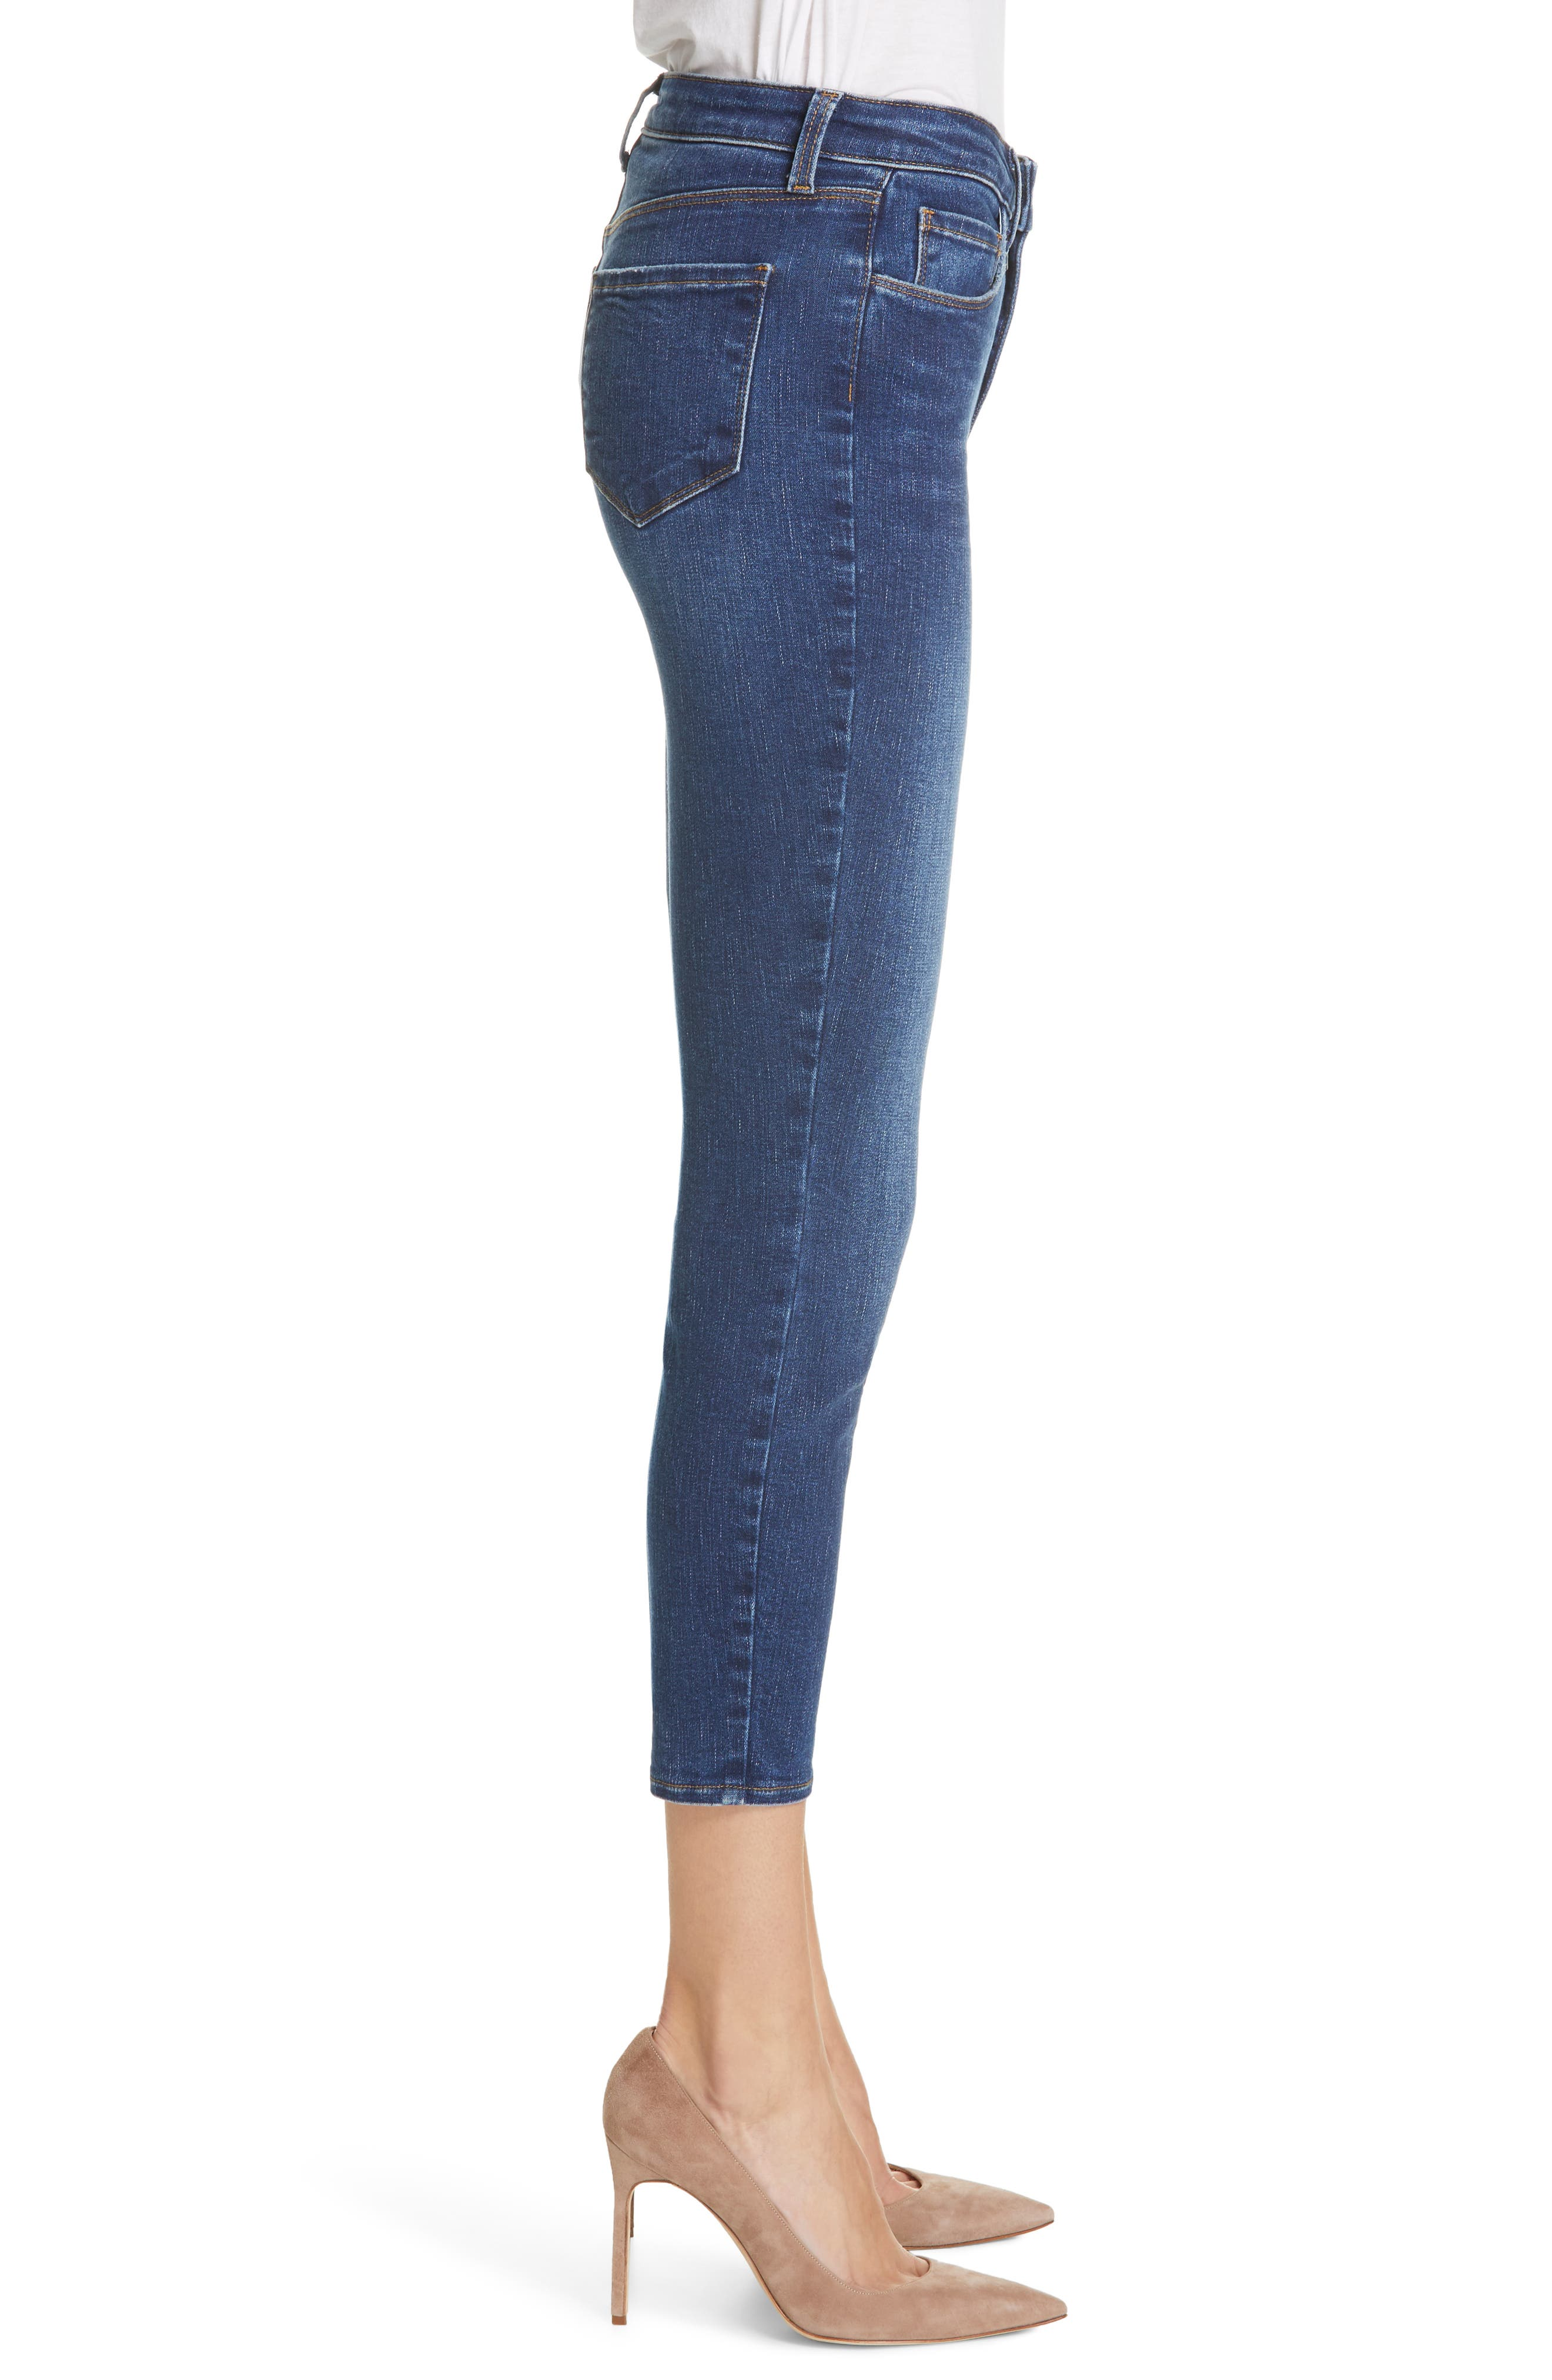 L'AGENCE, Margot Crop Skinny Jeans, Alternate thumbnail 4, color, TUSCAN